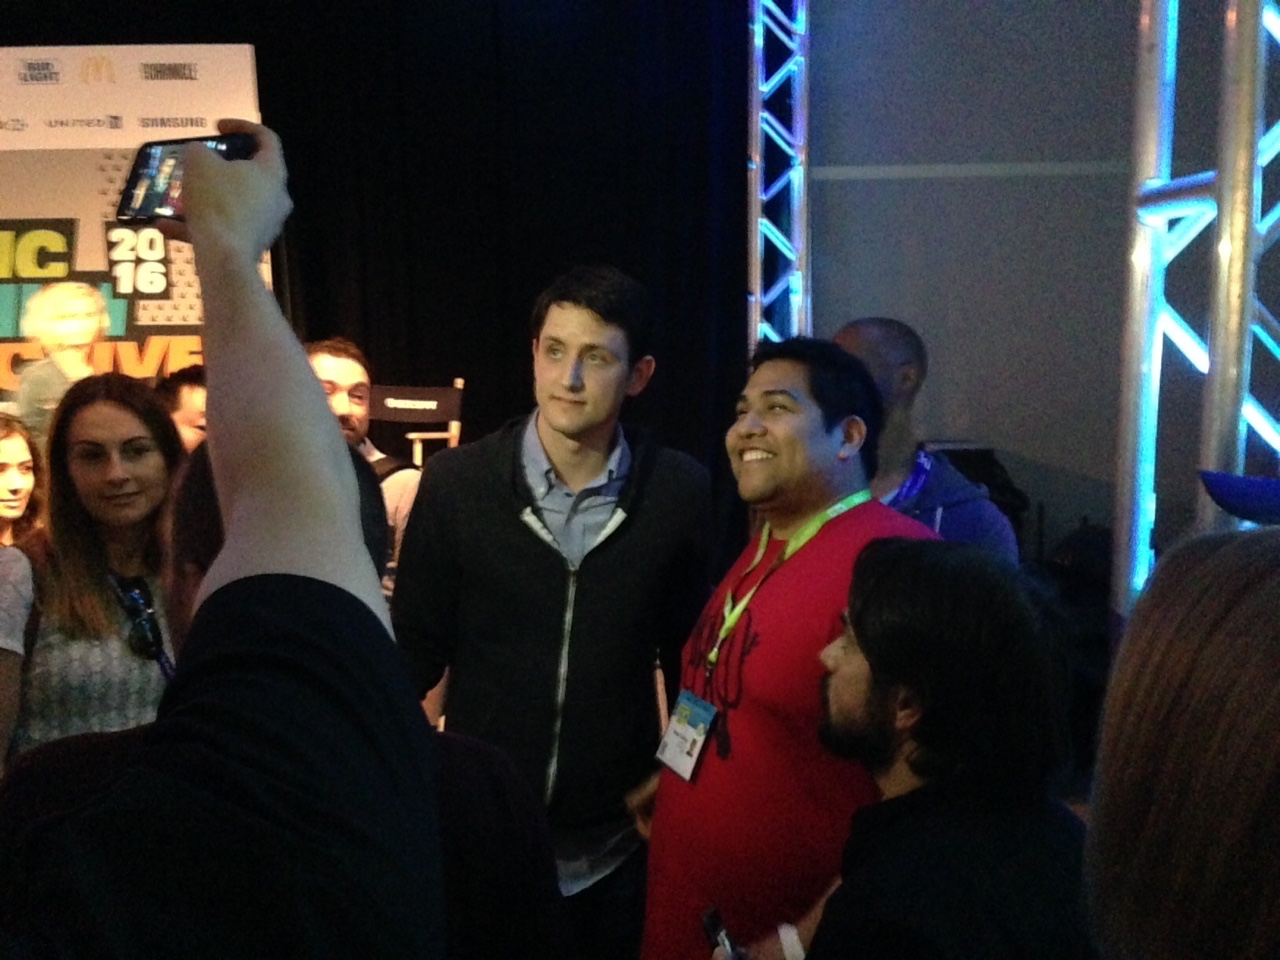 Zach Woods, who plays Jared on HBO's <em>Silicon Valley</em>, takes a photo with a fan at SXSW.